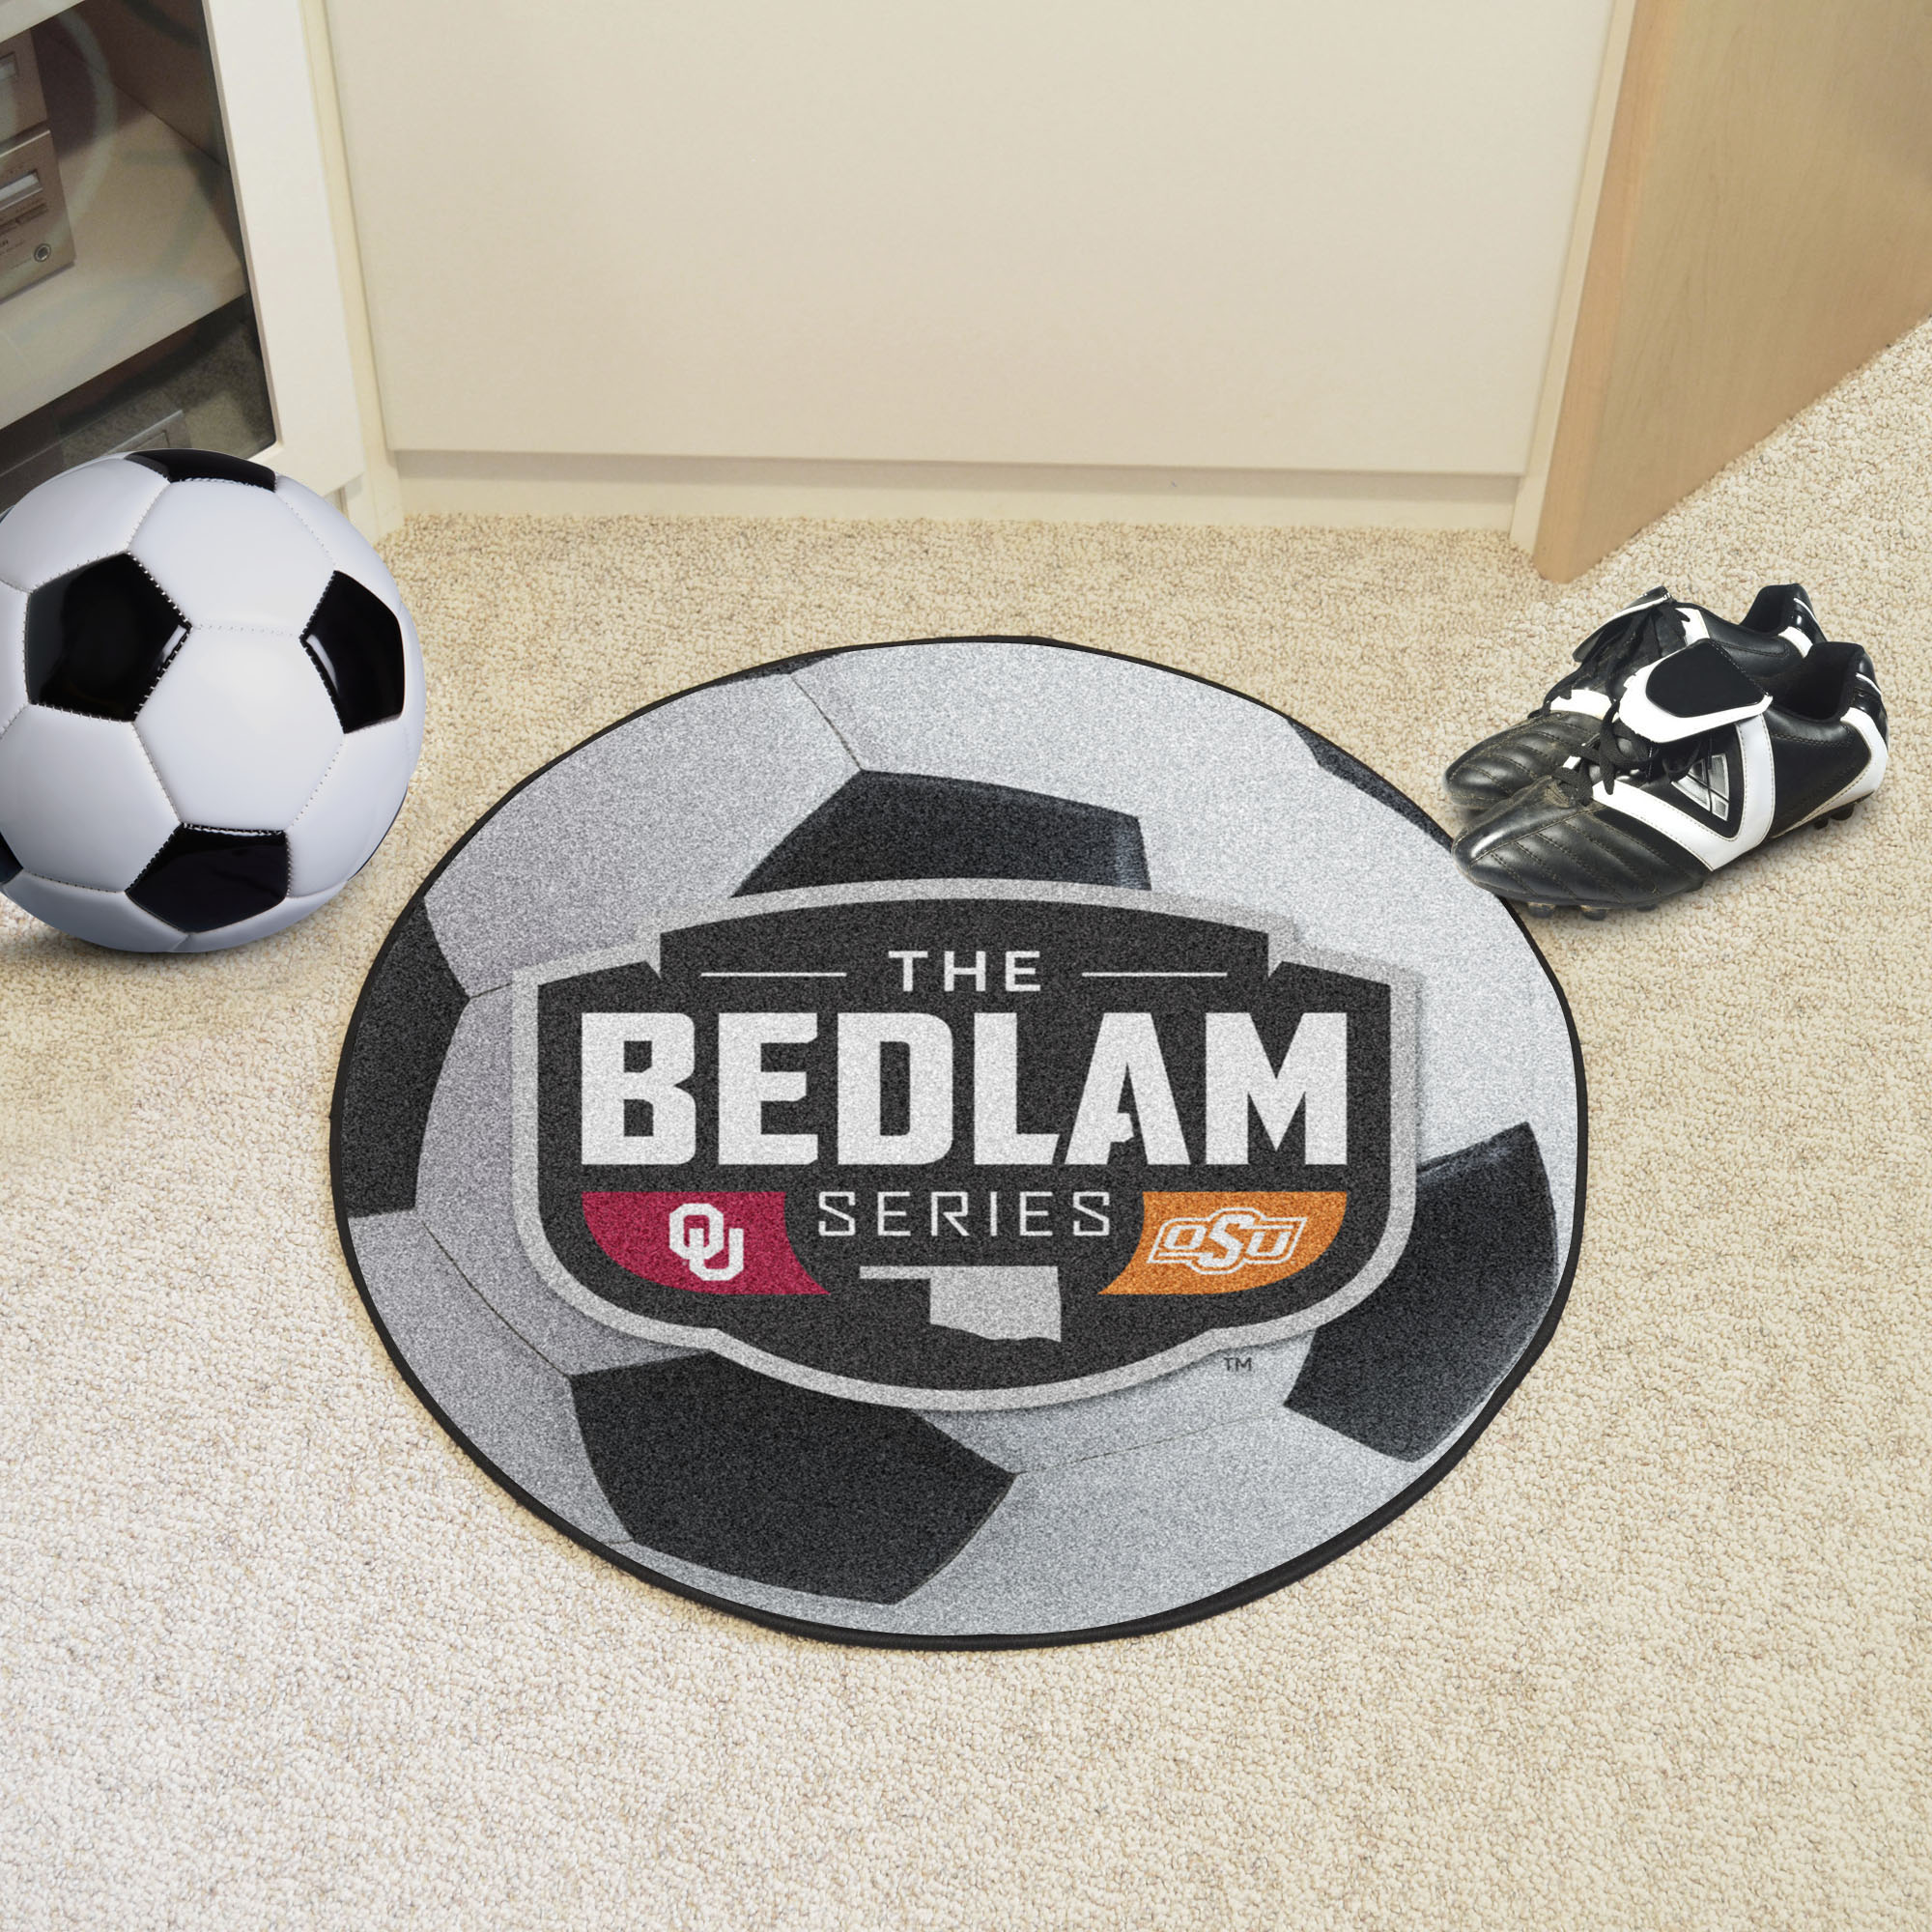 Bedlam Series Ball Shaped Area Rugs (Ball Shaped Area Rugs: Soccer Ball)